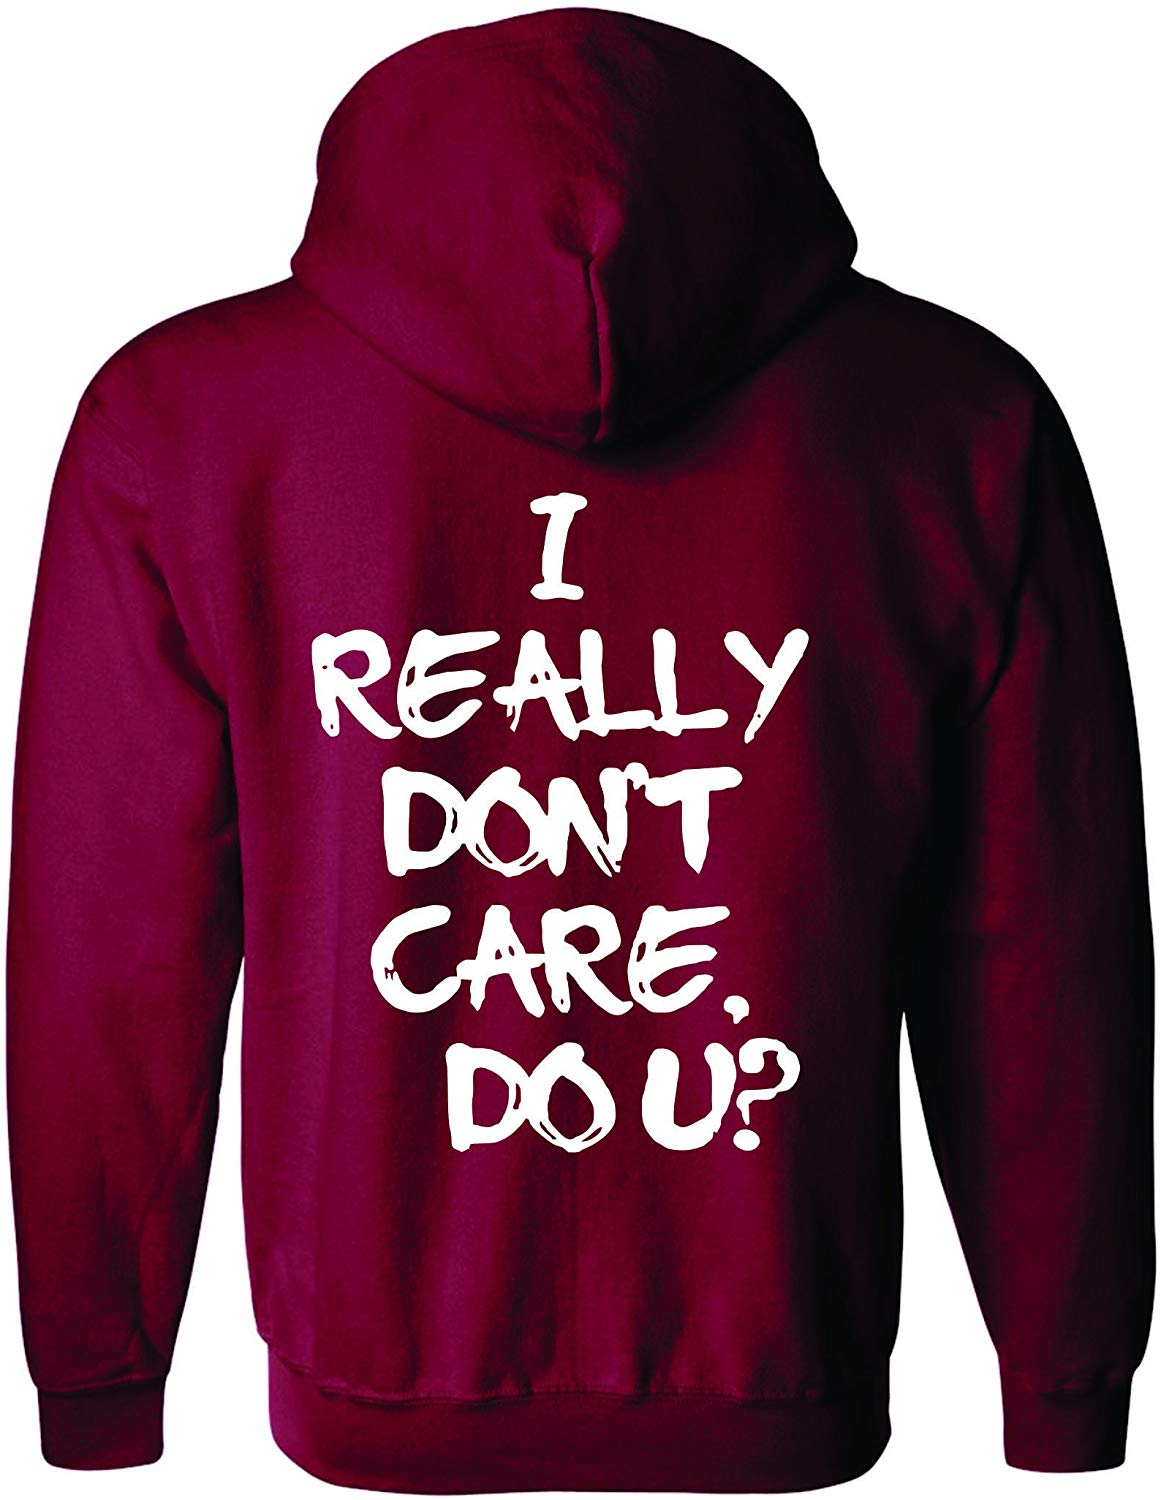 Adult Zipper Hoodie I Really Dont Care Do U Jacket Trend <font><b>Viral</b></font> Outfit Men Women Hoodie Sweatshirt image